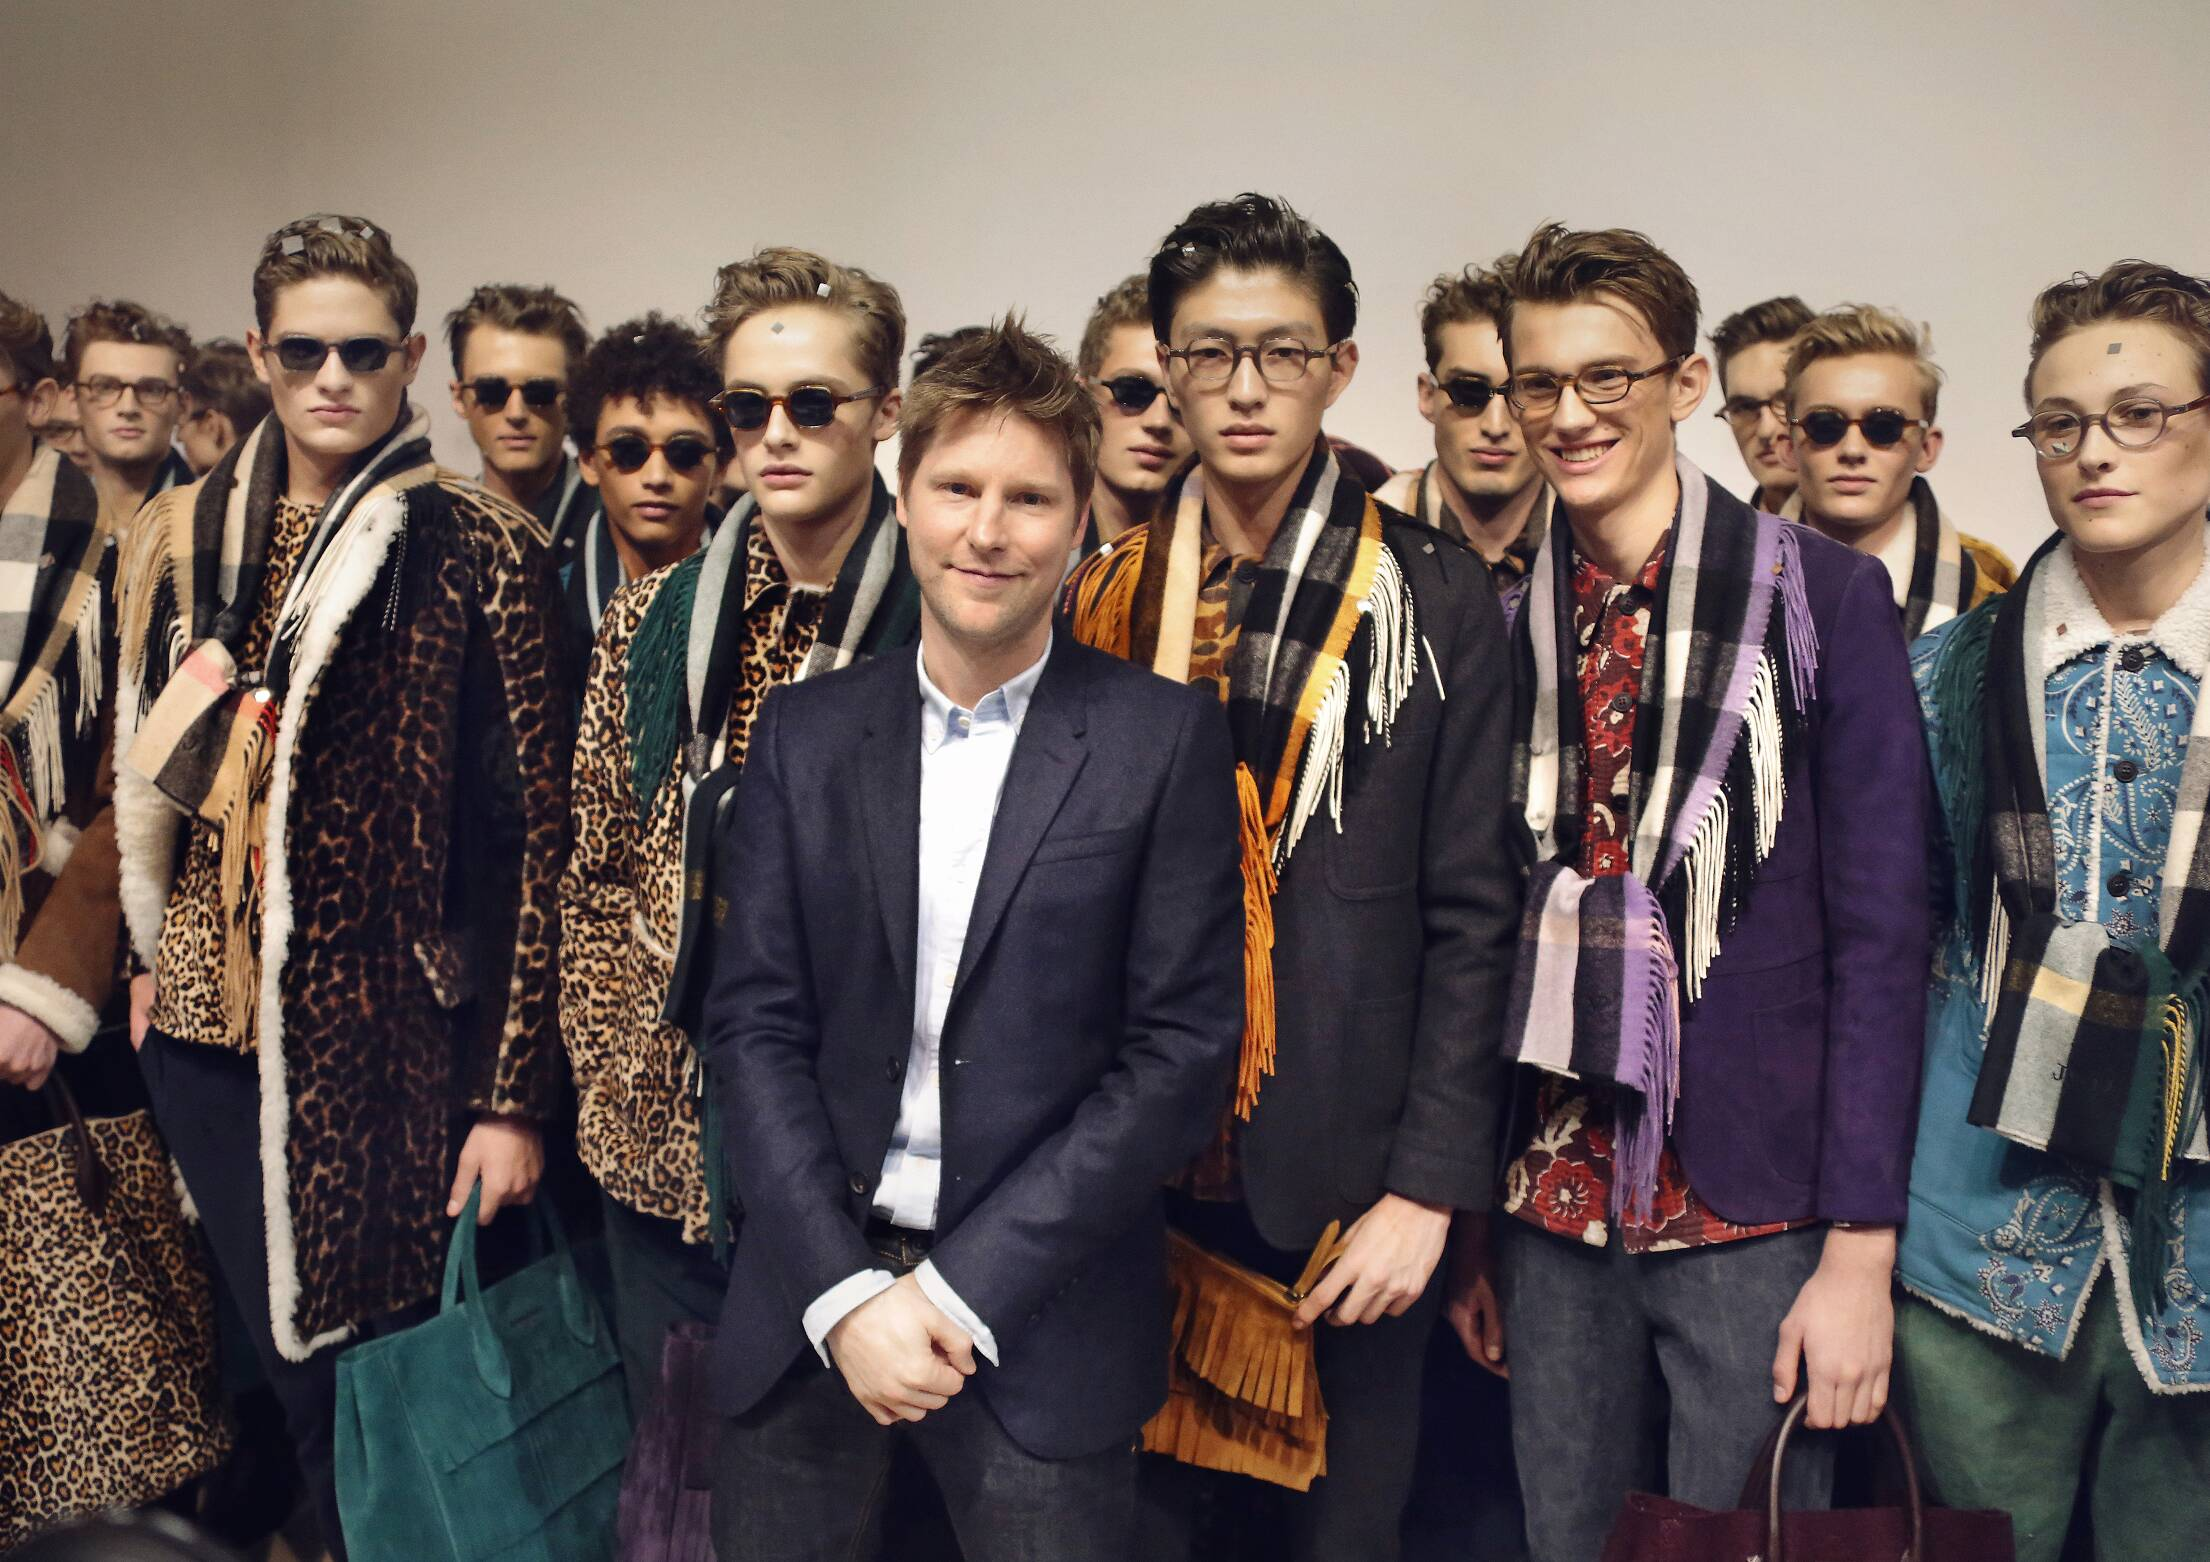 Backstage Burberry 2015